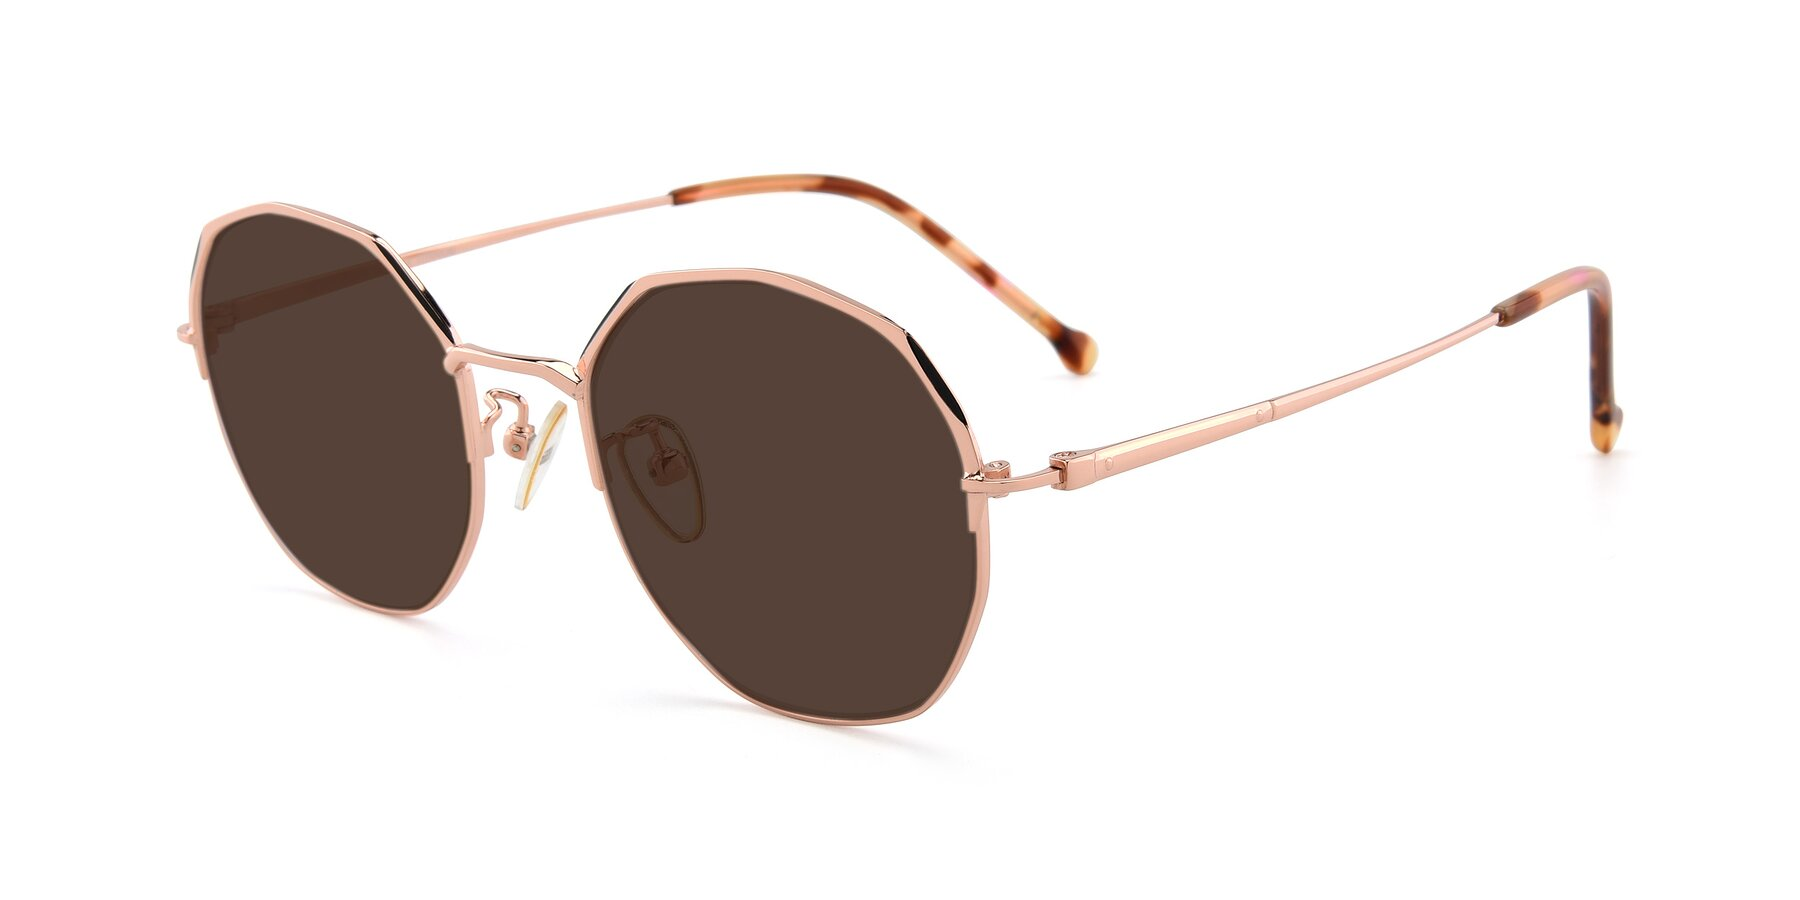 Angle of 18020 in Rose Gold with Brown Tinted Lenses